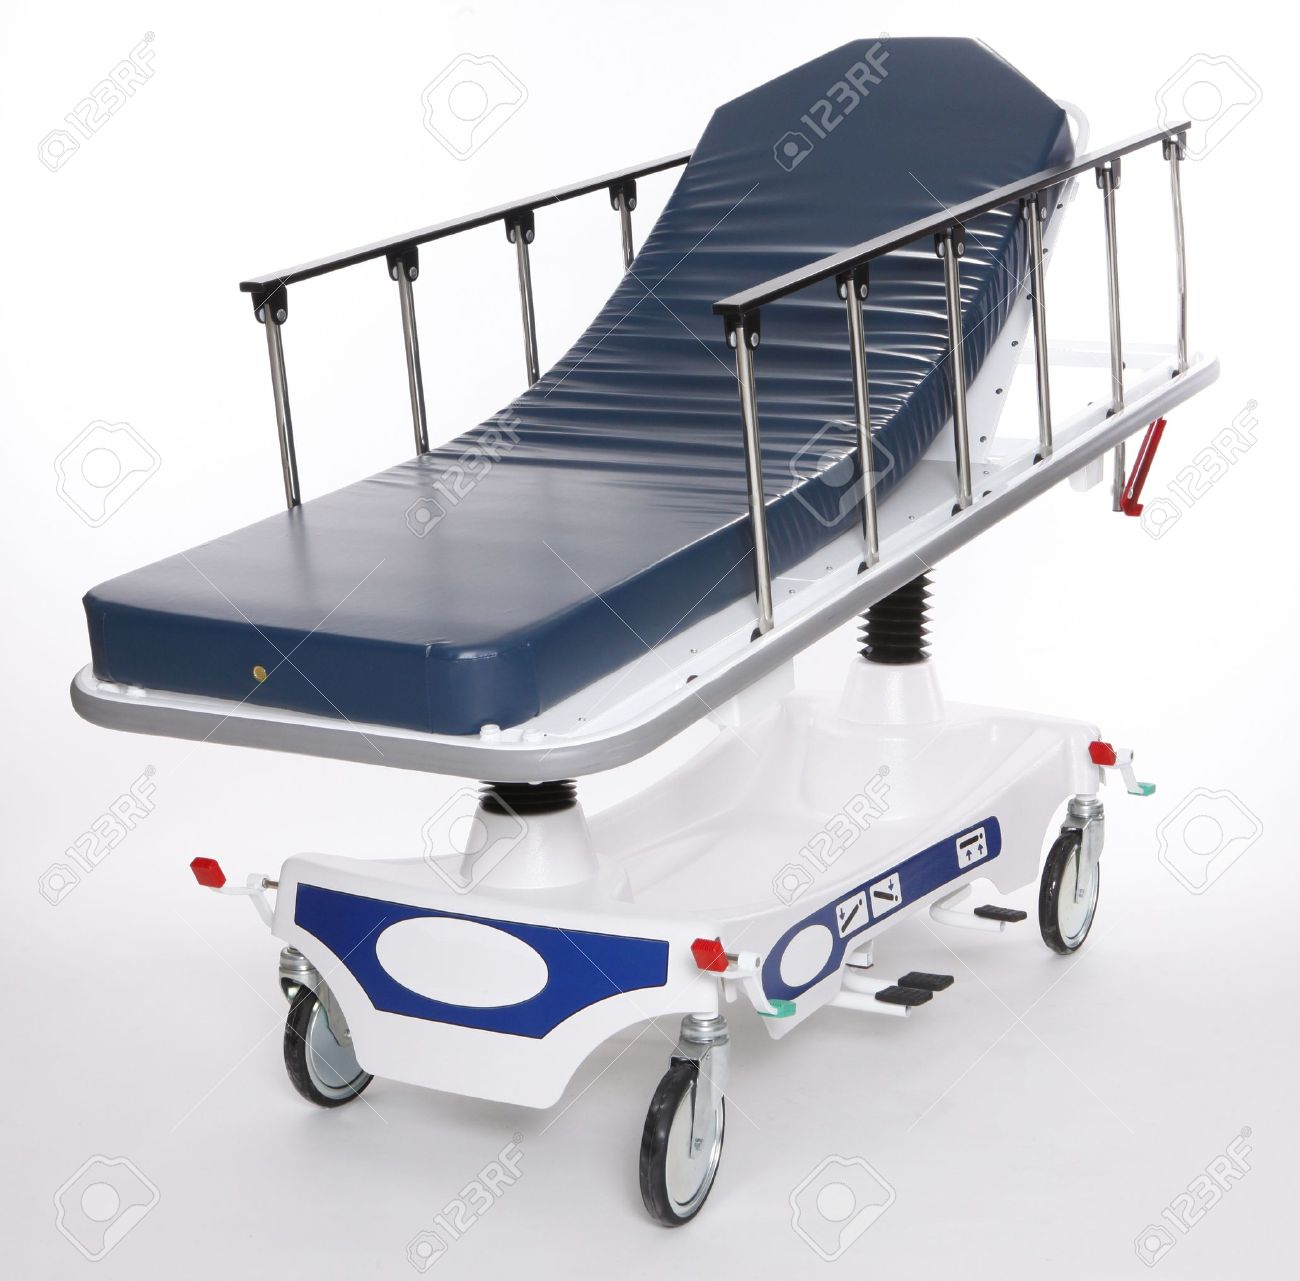 Mobile and adjustable hospital stretcher Stock Photo - 8117985